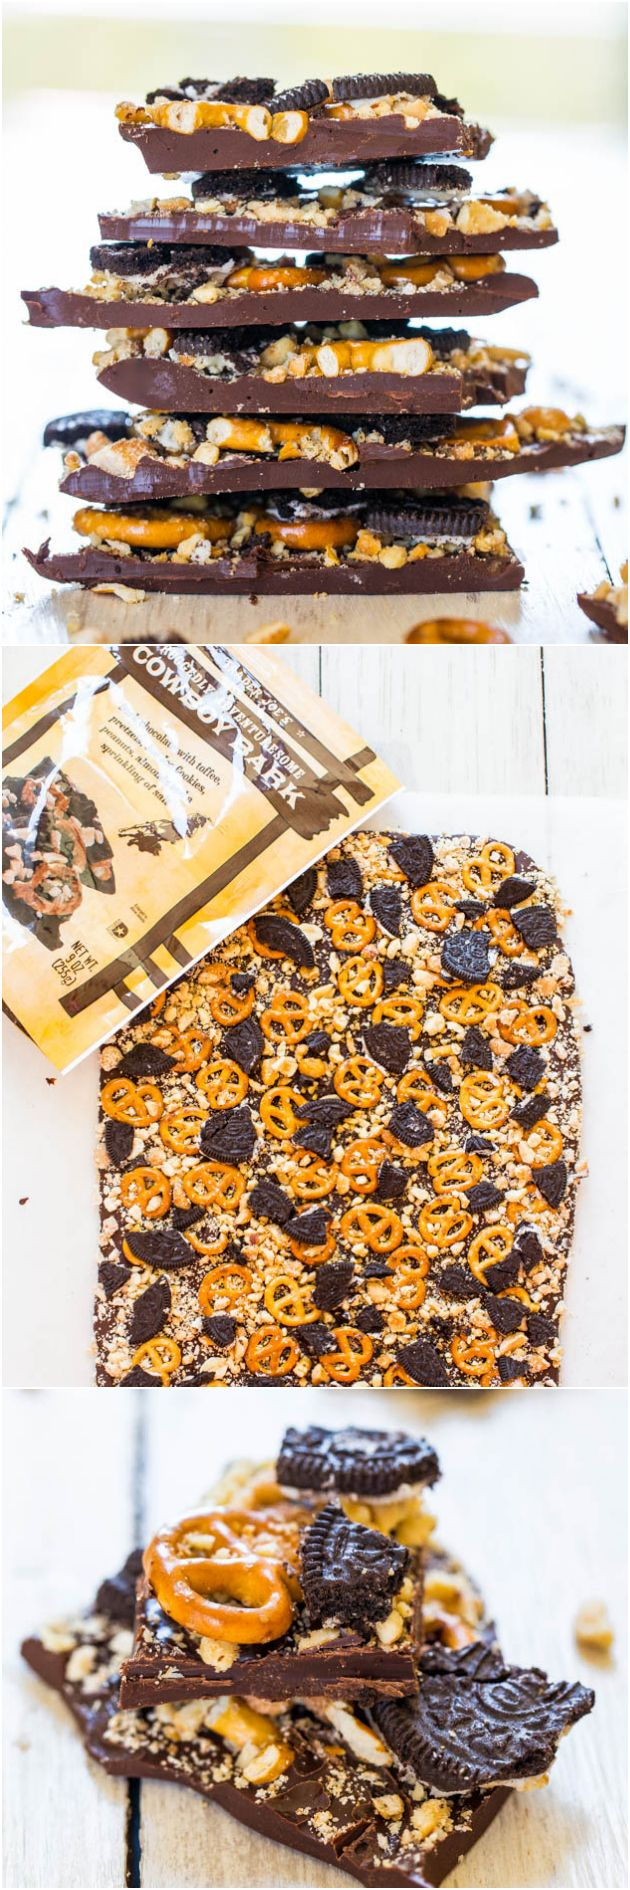 Cowboy Bark: Trader Joe's Copycat Recipe - Just like the real thing & ready in 5 minutes. Salty-and-sweet & supremely good! AverieCooks.com #snacks #appetizers #pretzels @Averie Sunshine {Averie Cooks}